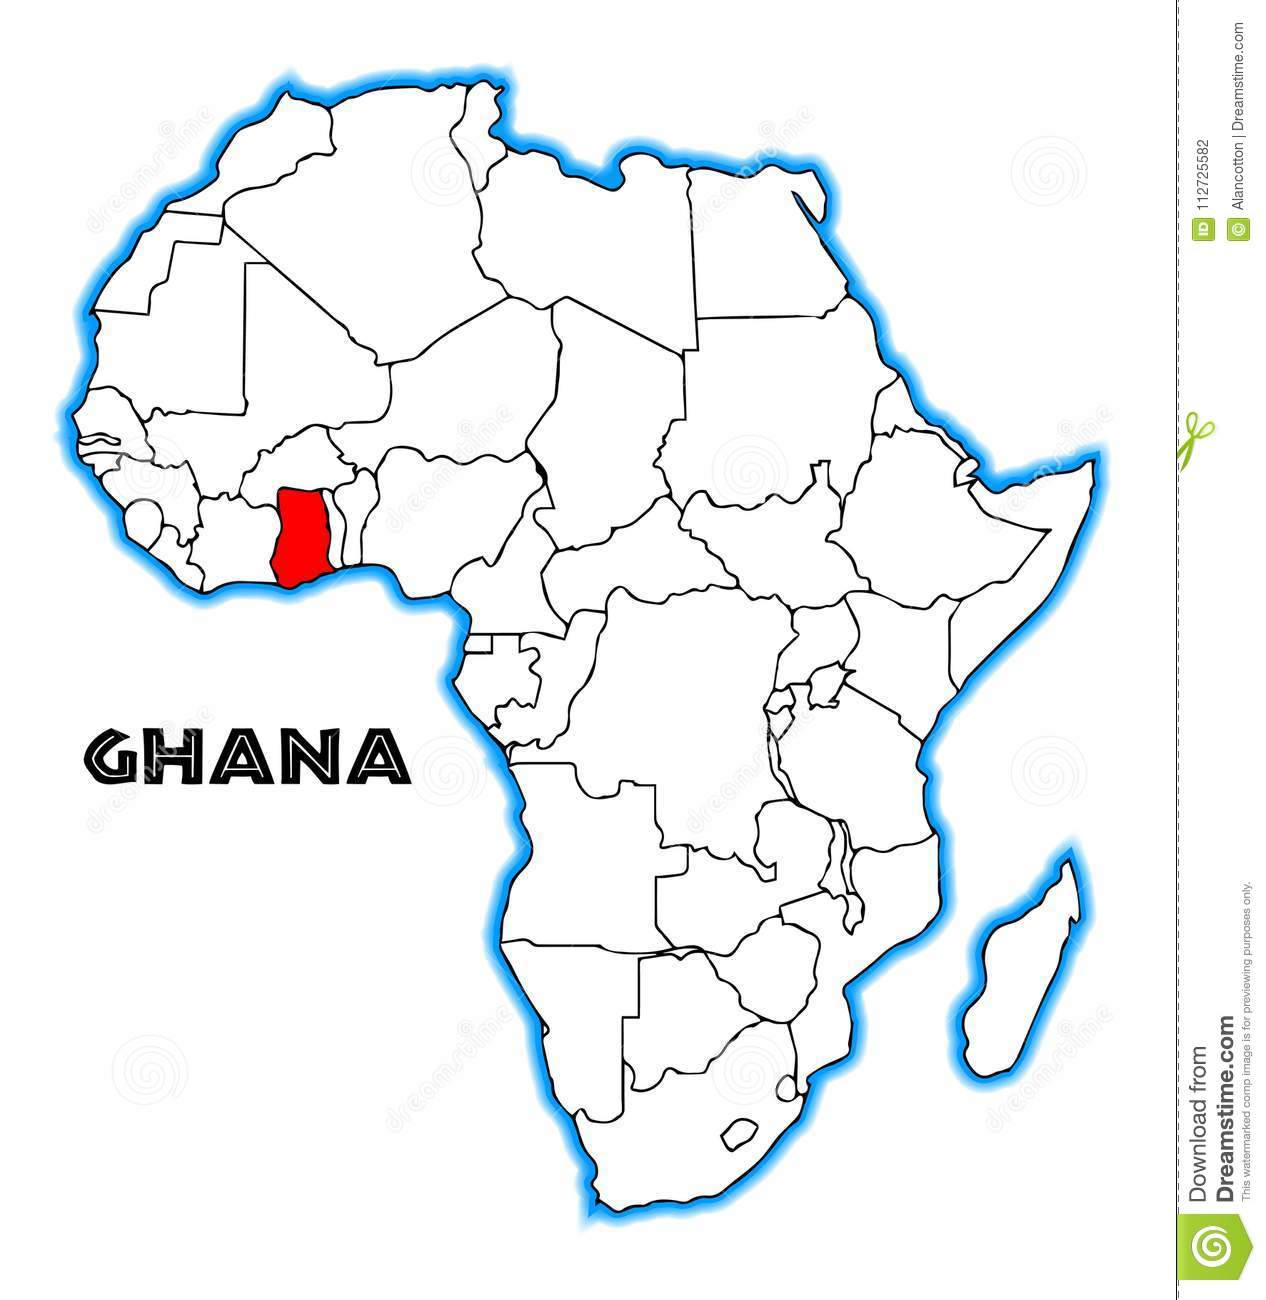 Ghana Africa Map Ghana Africa Map stock vector. Illustration of illustration